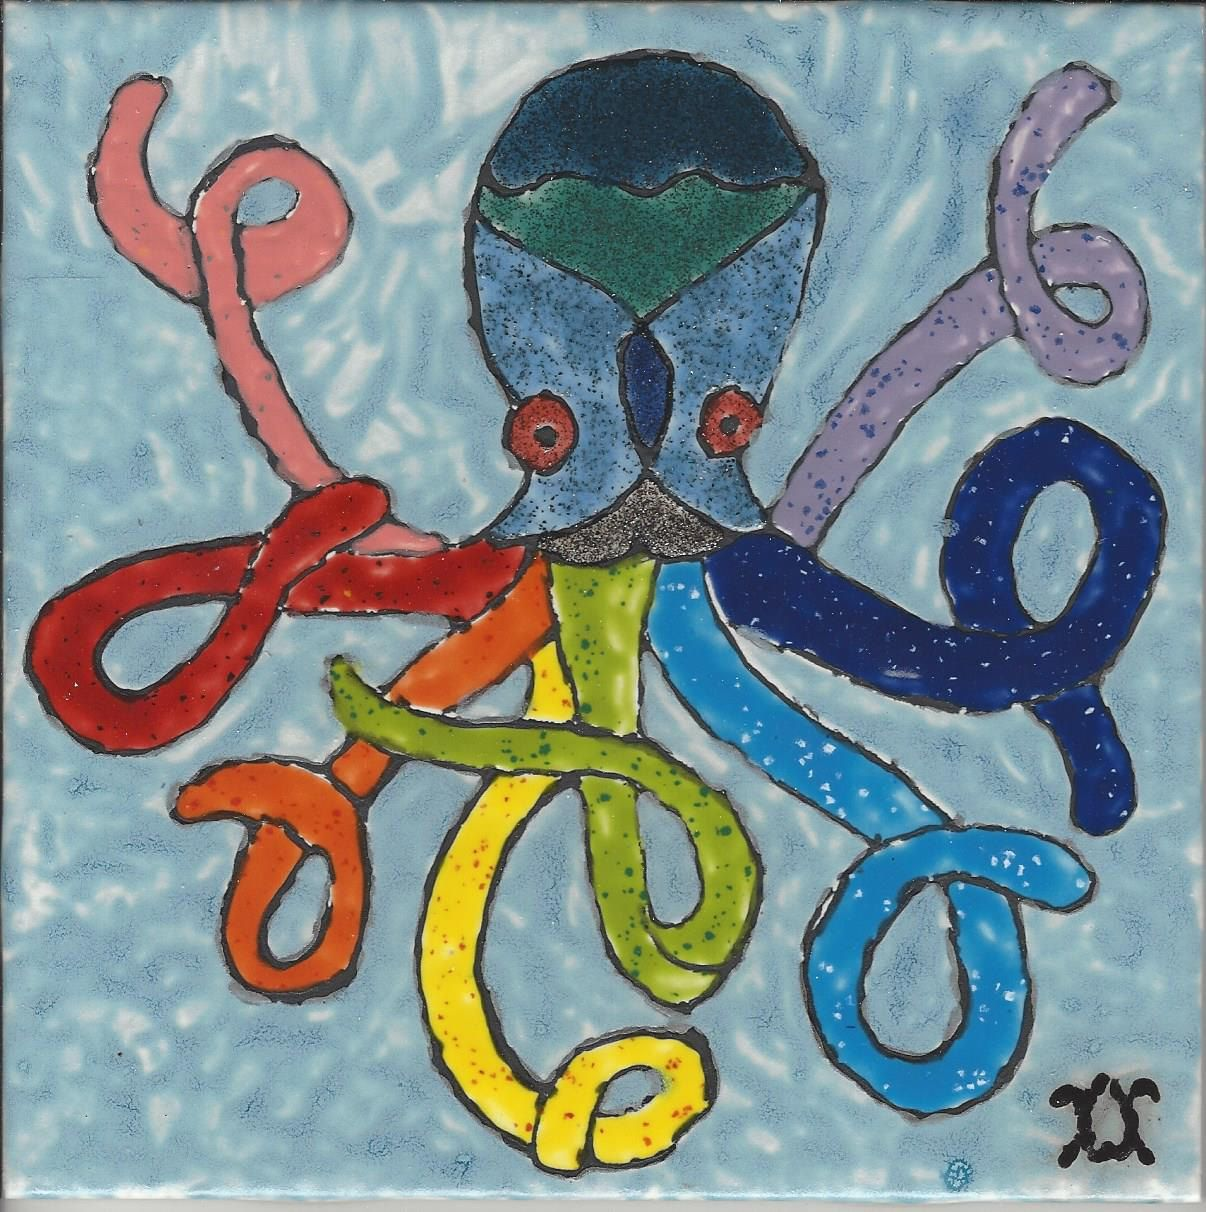 Hand Painted Decorative Ceramic Picture Tiles Interesting Rainbow Octopus Hand Painted Kiln Fired Decorative Ceramic Wall Design Decoration